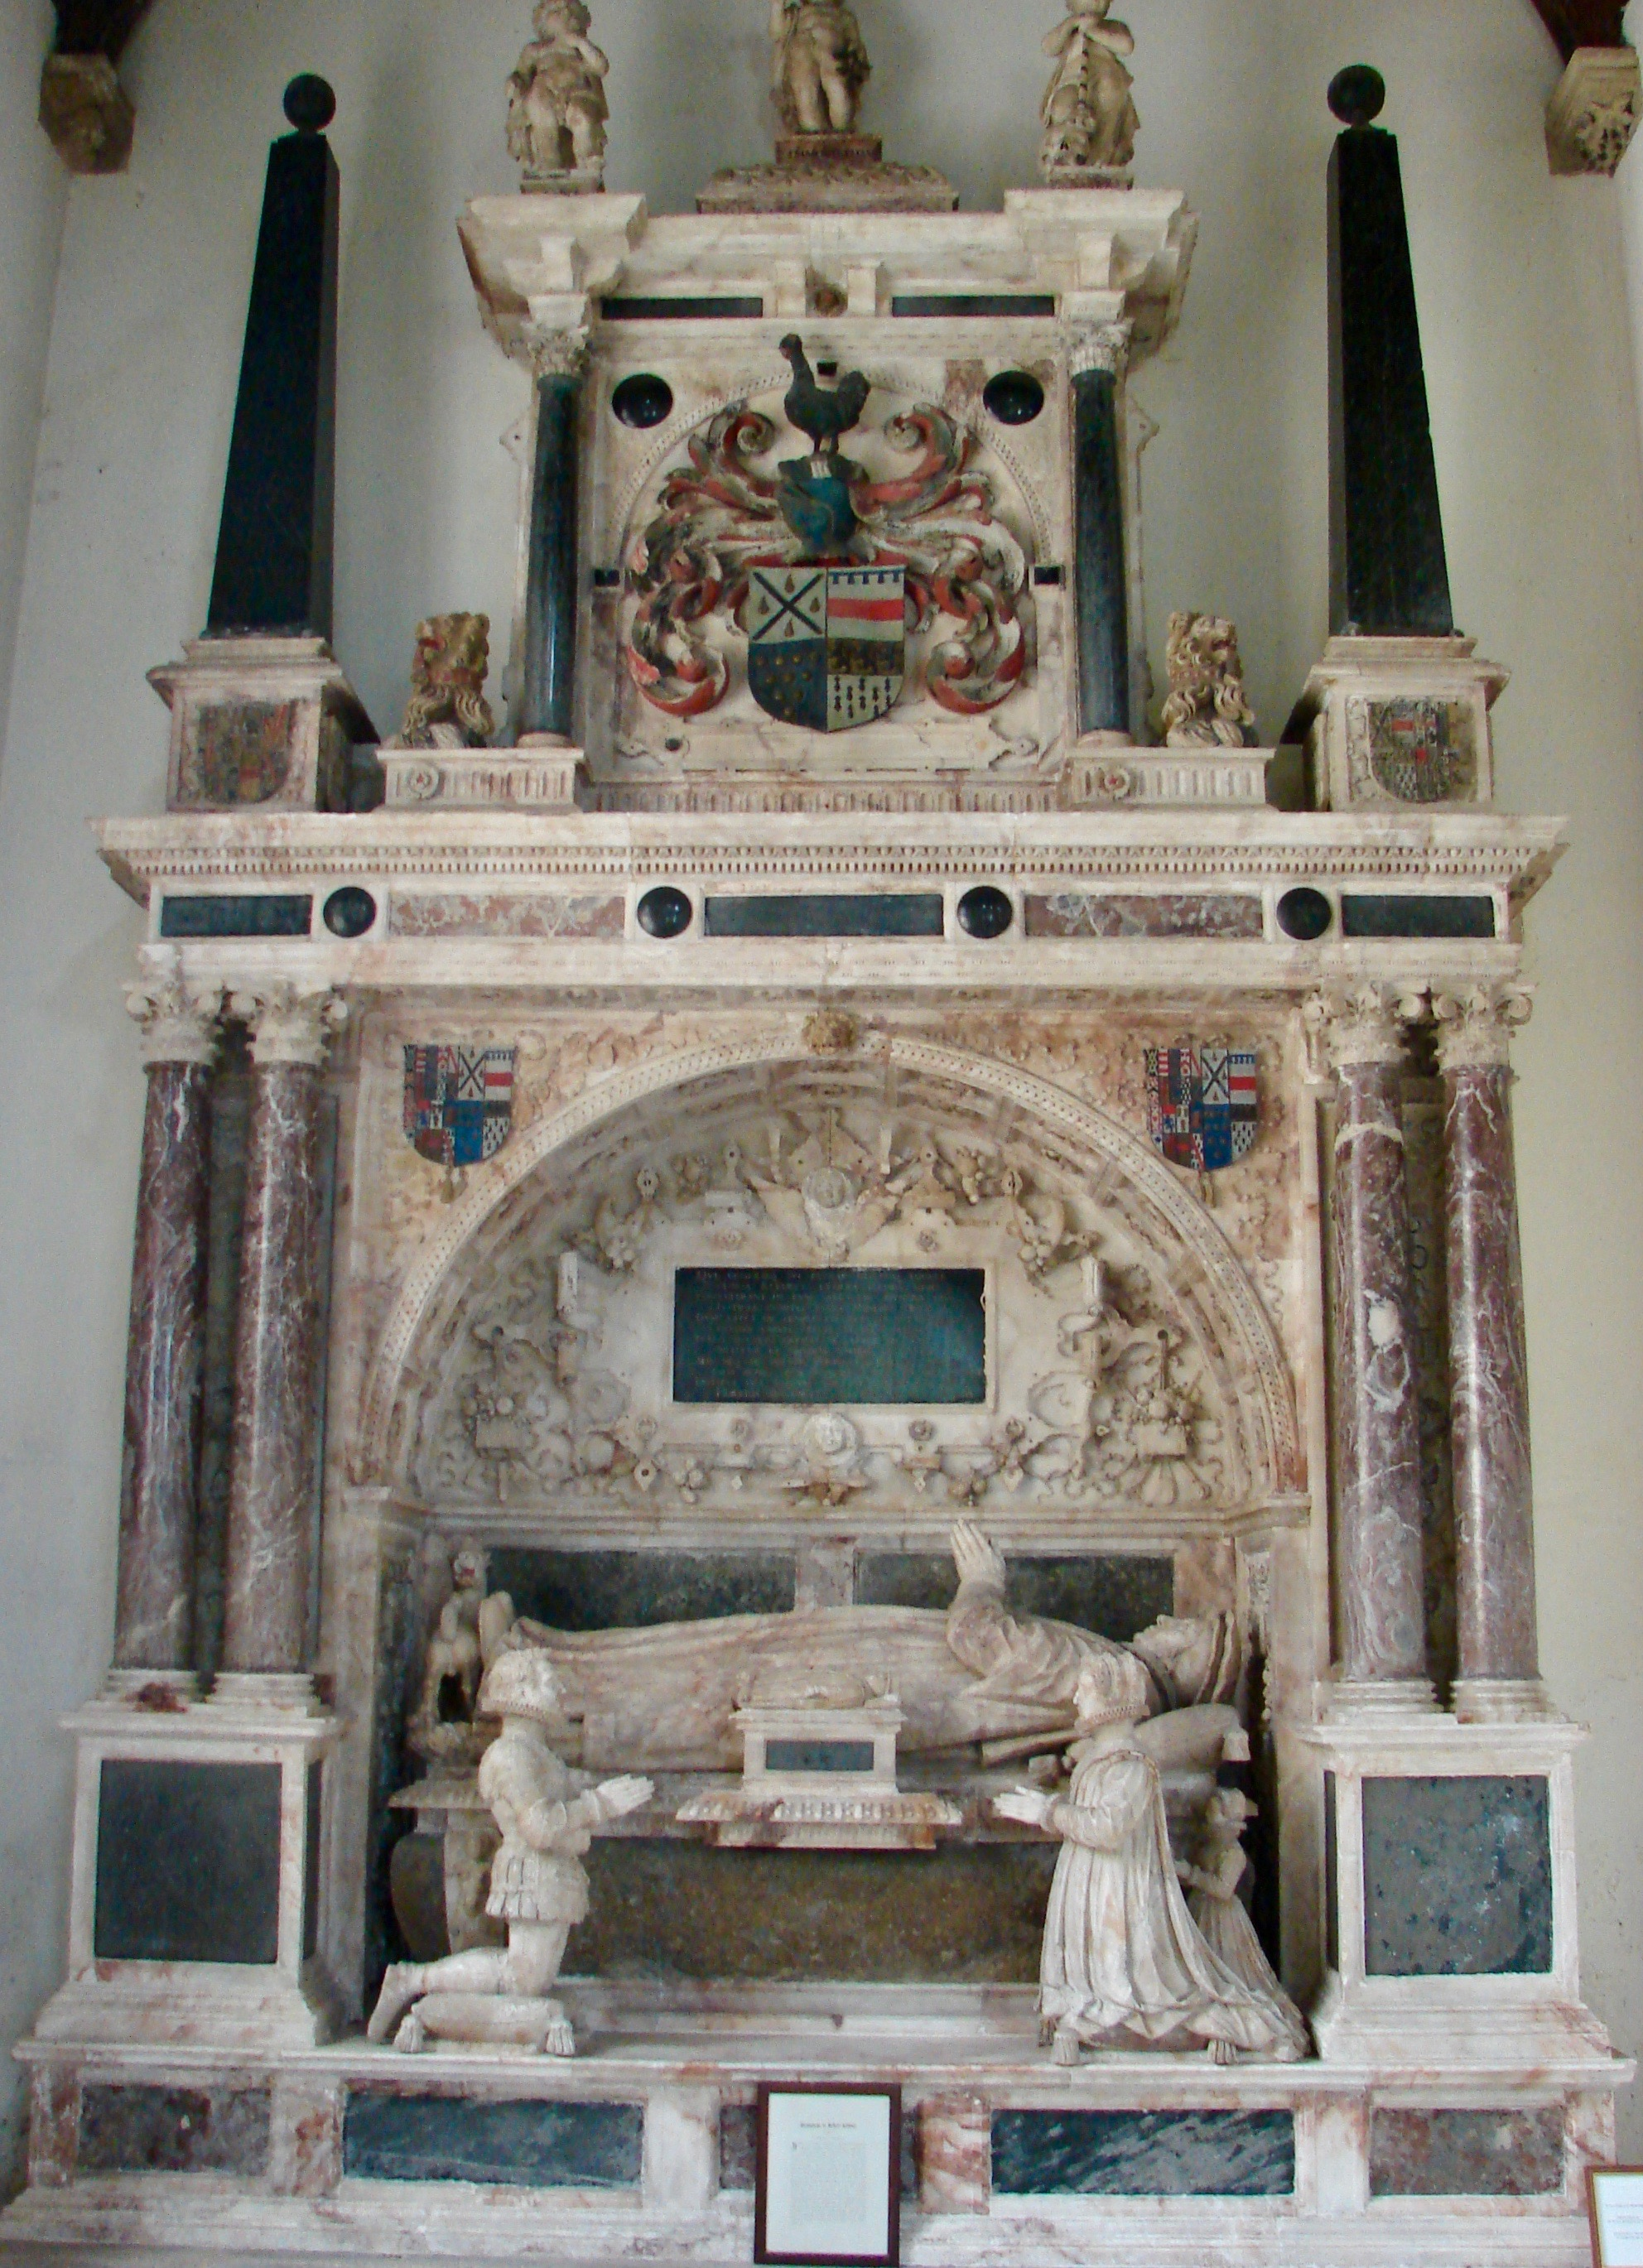 Kelway Monument in the Church of St Peter & St Paul, Exton, Rutland. Image by Catherine Snowball.